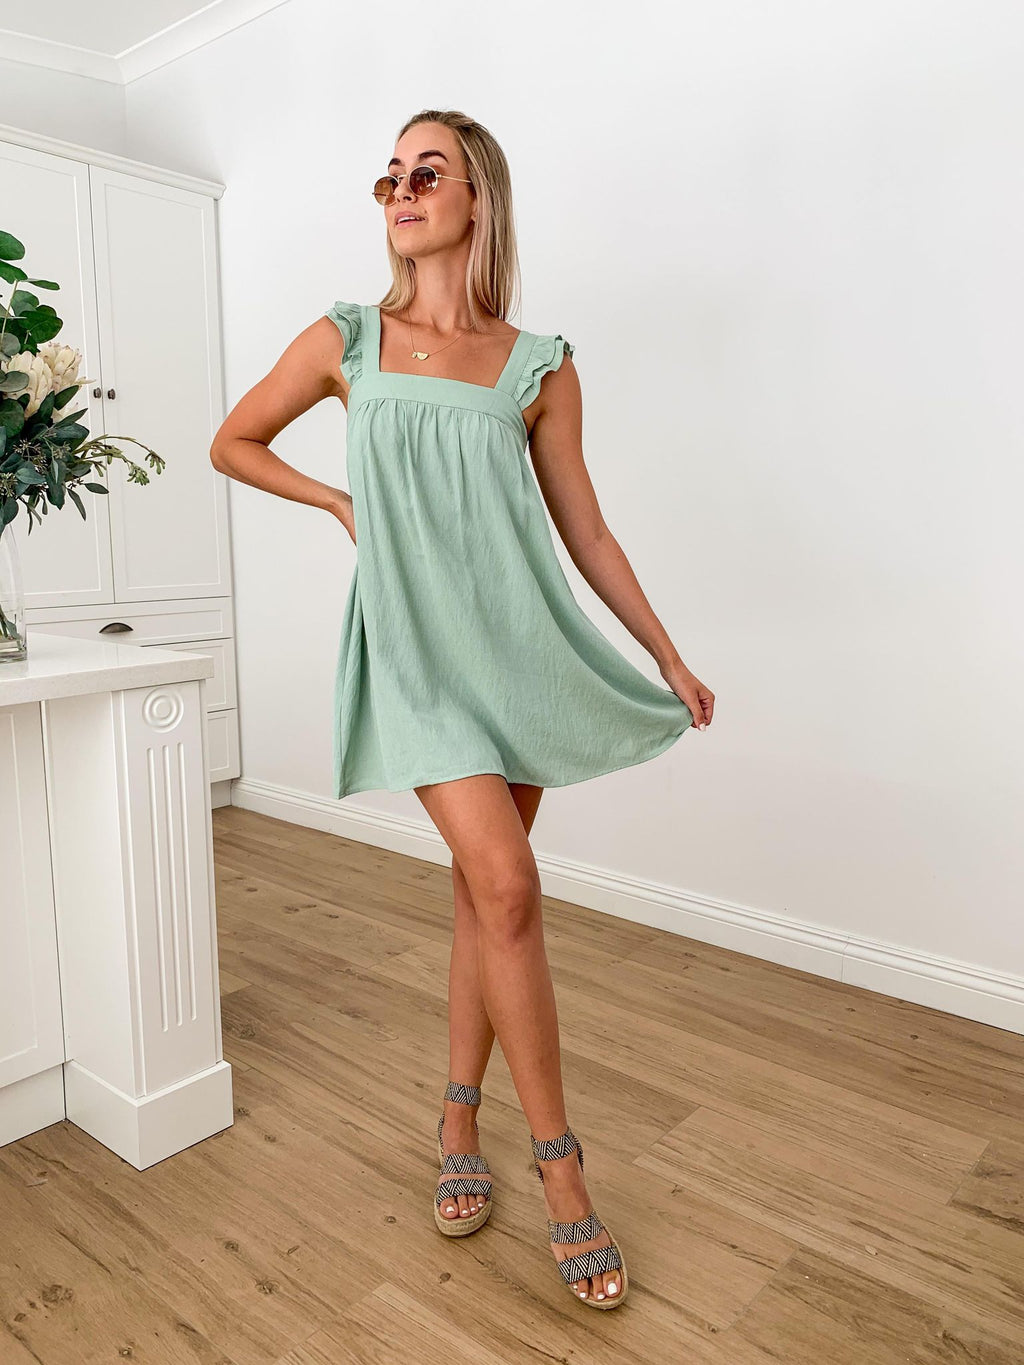 Raffa Baby Doll Dress - MINT